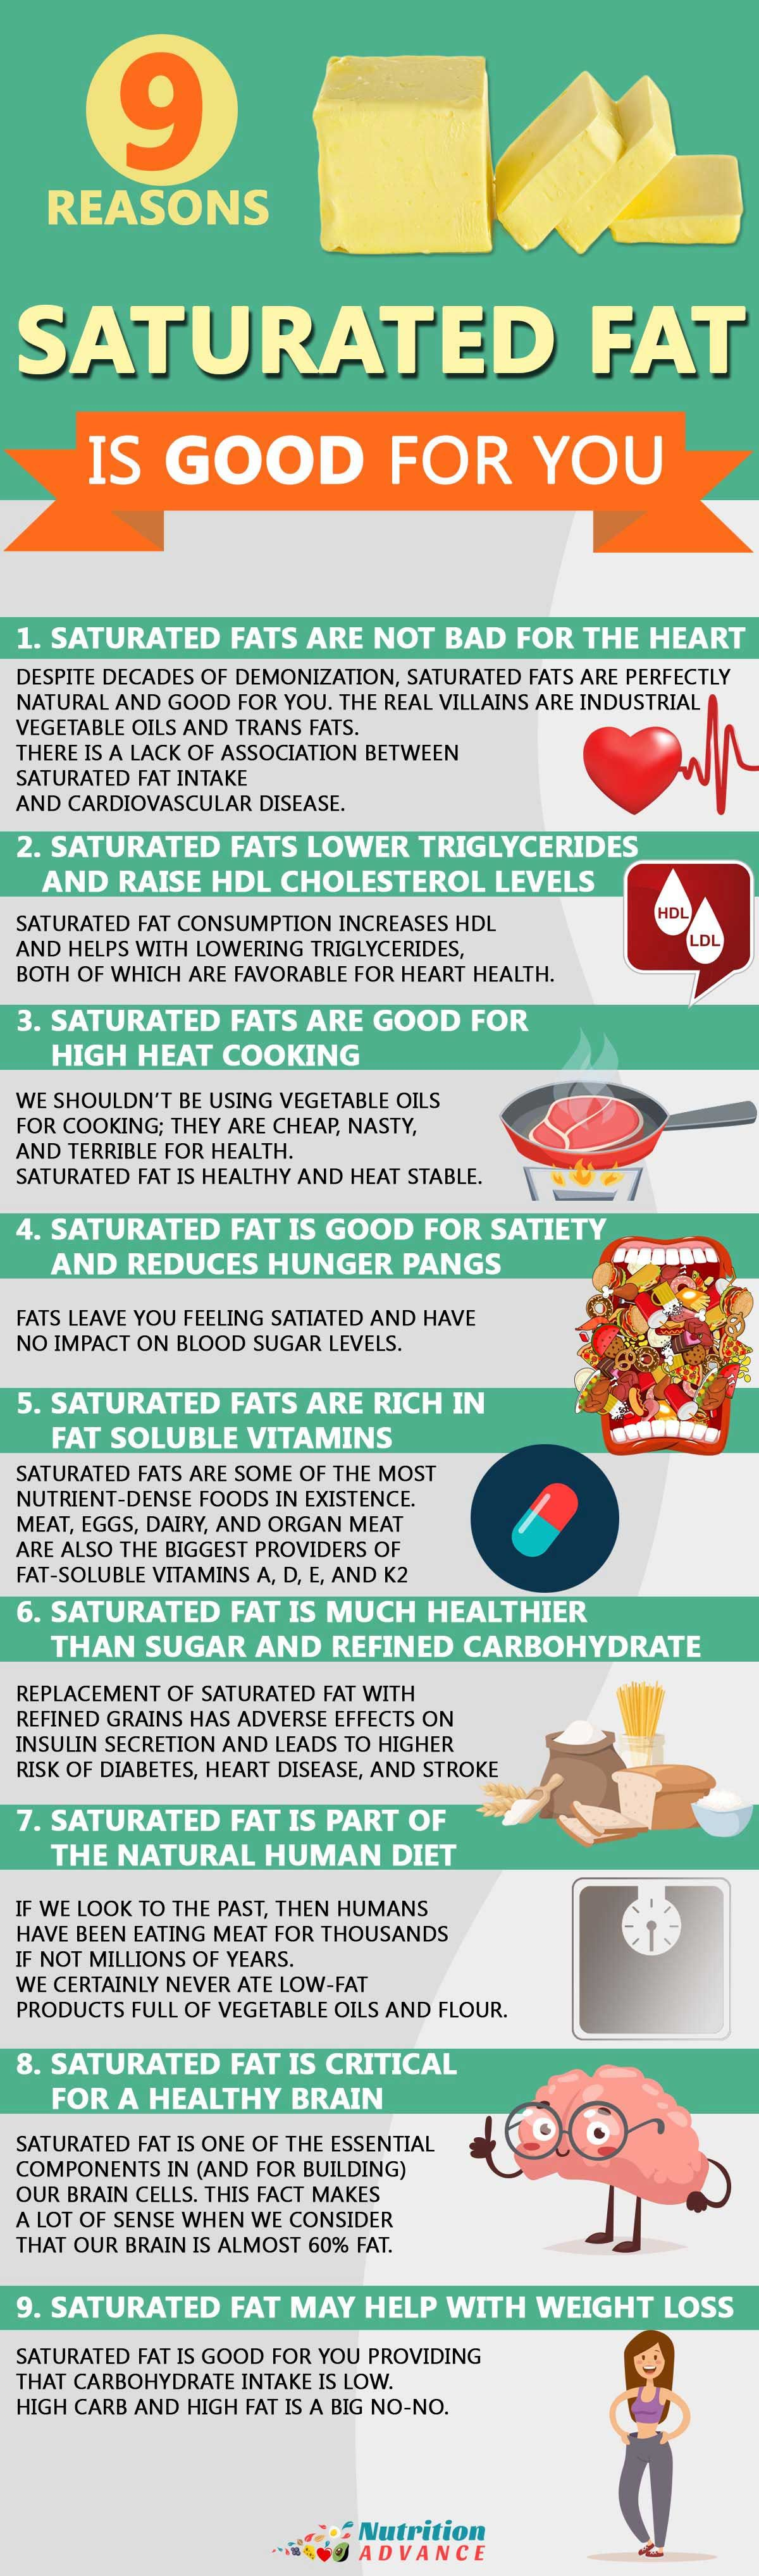 saturated fat and keto diet